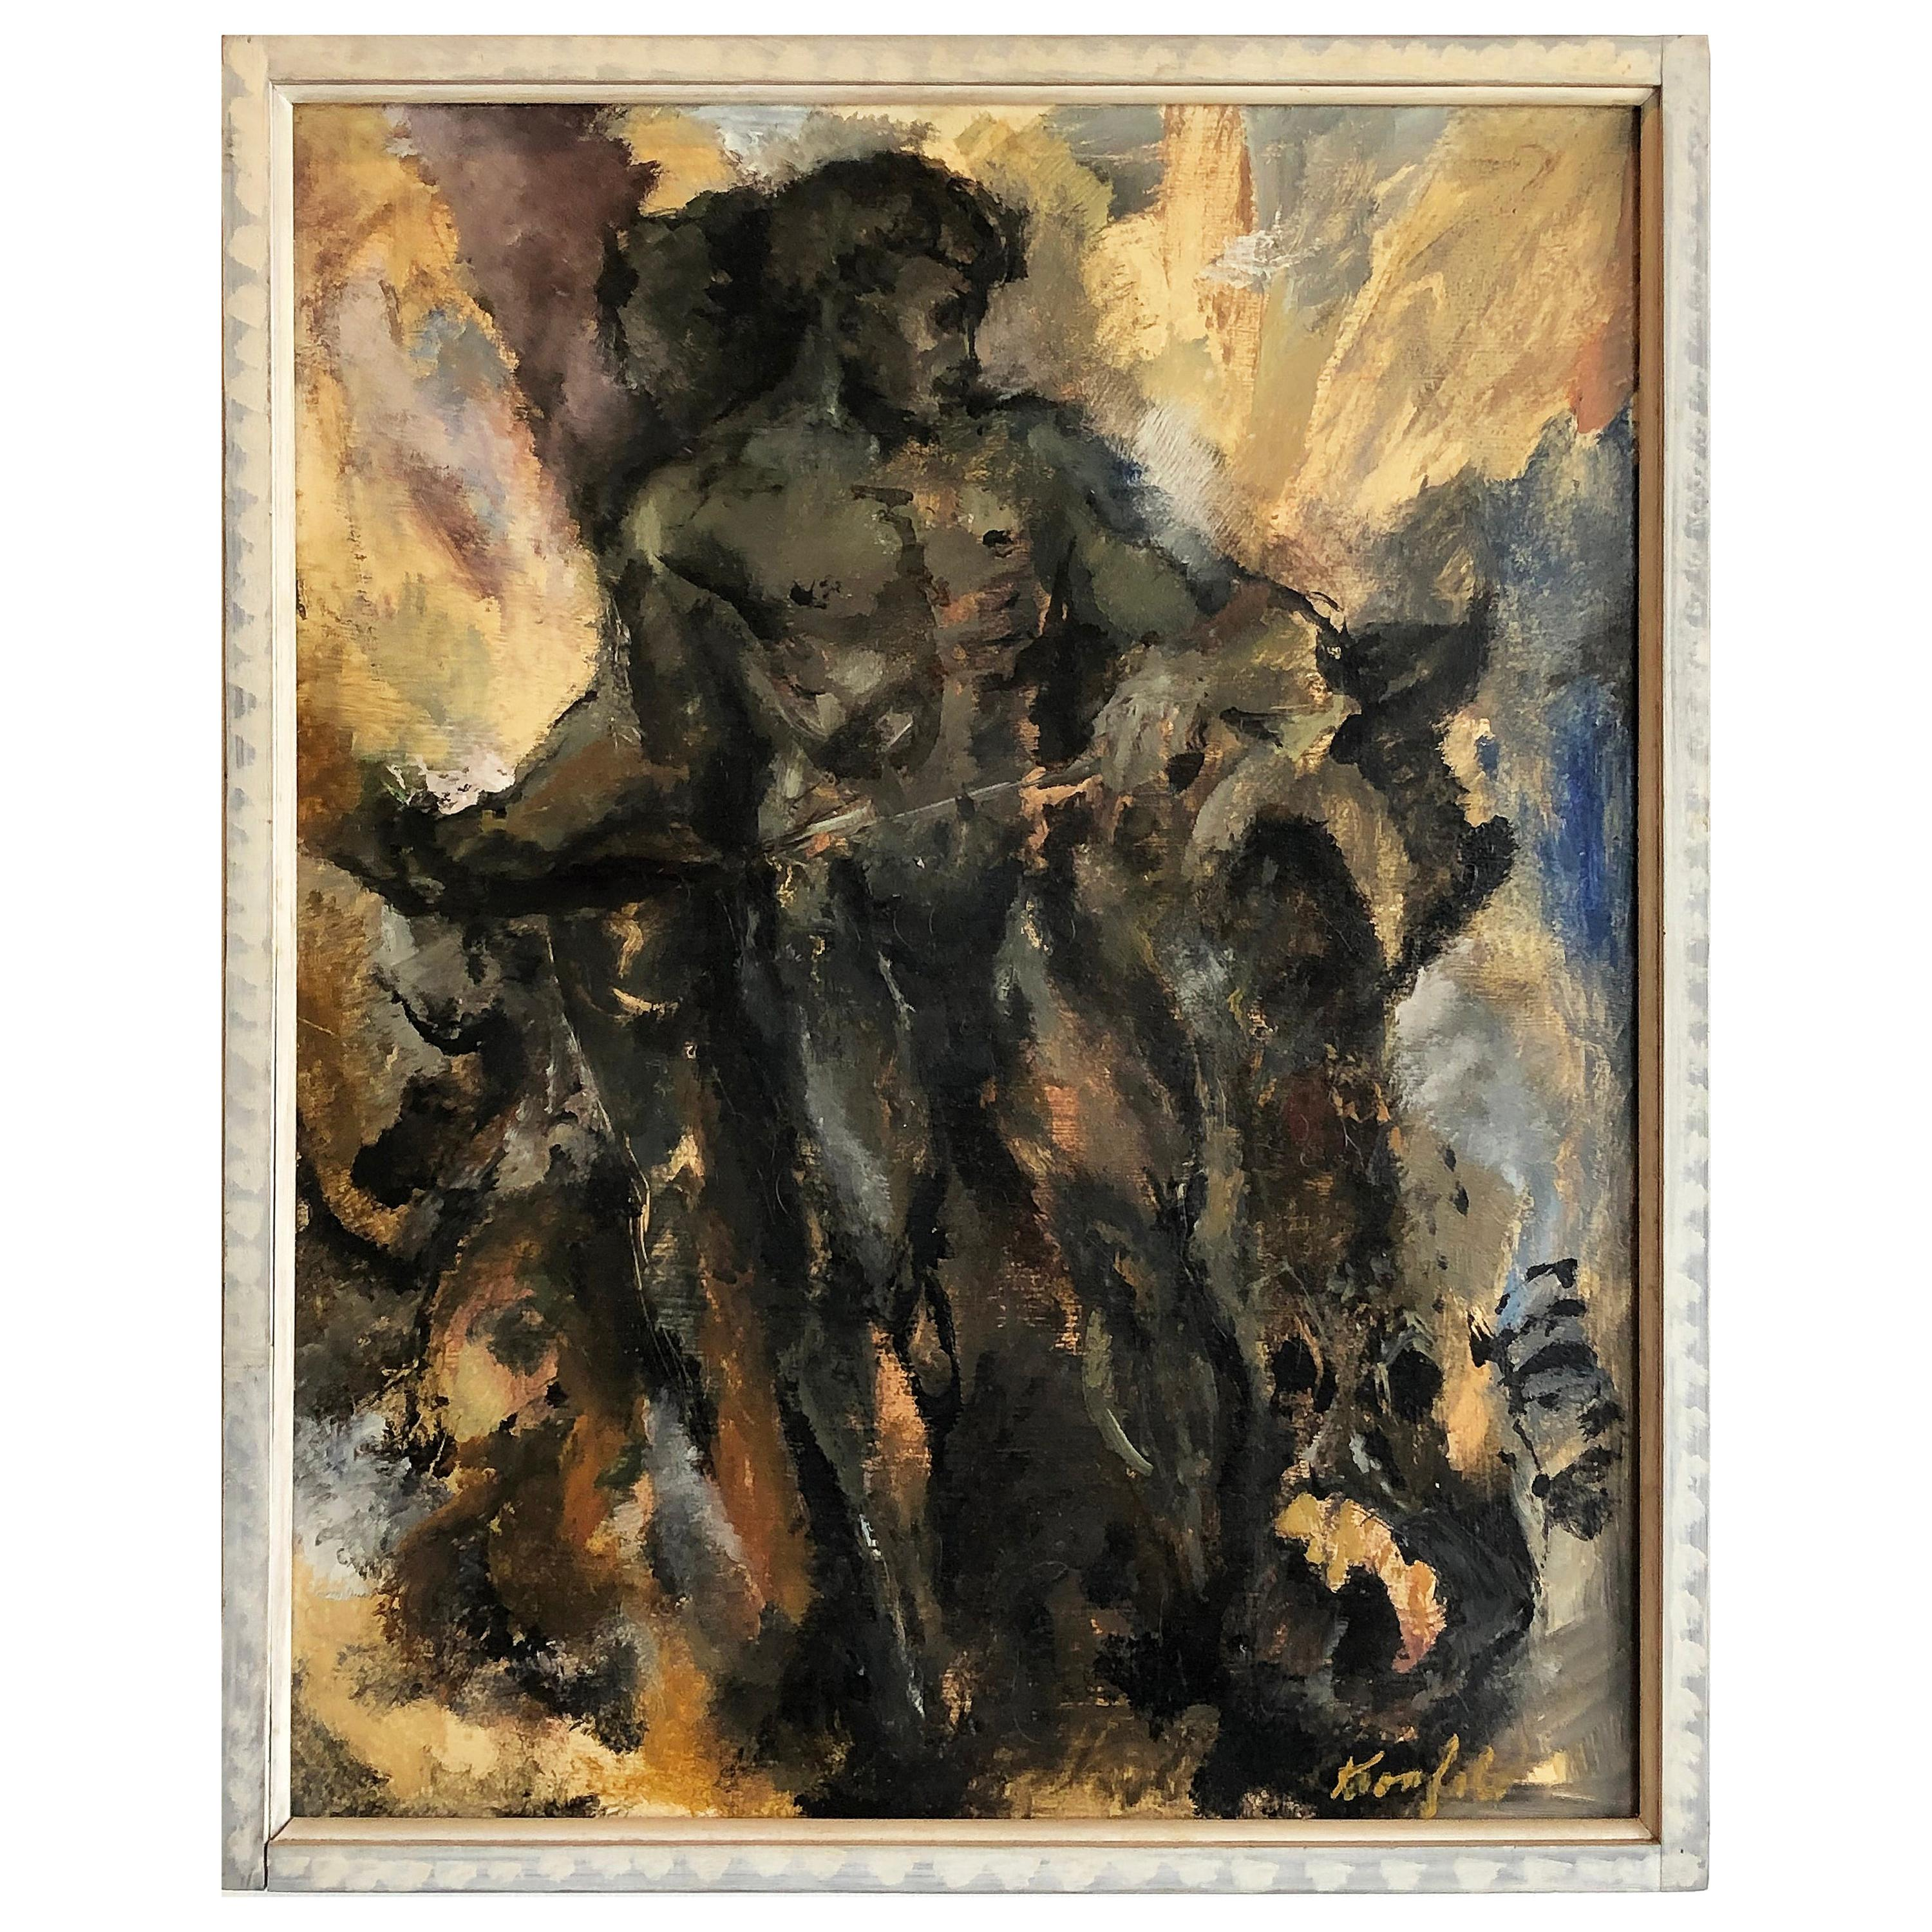 1950s Vintage Male Nude Study Oil Painting, Signed